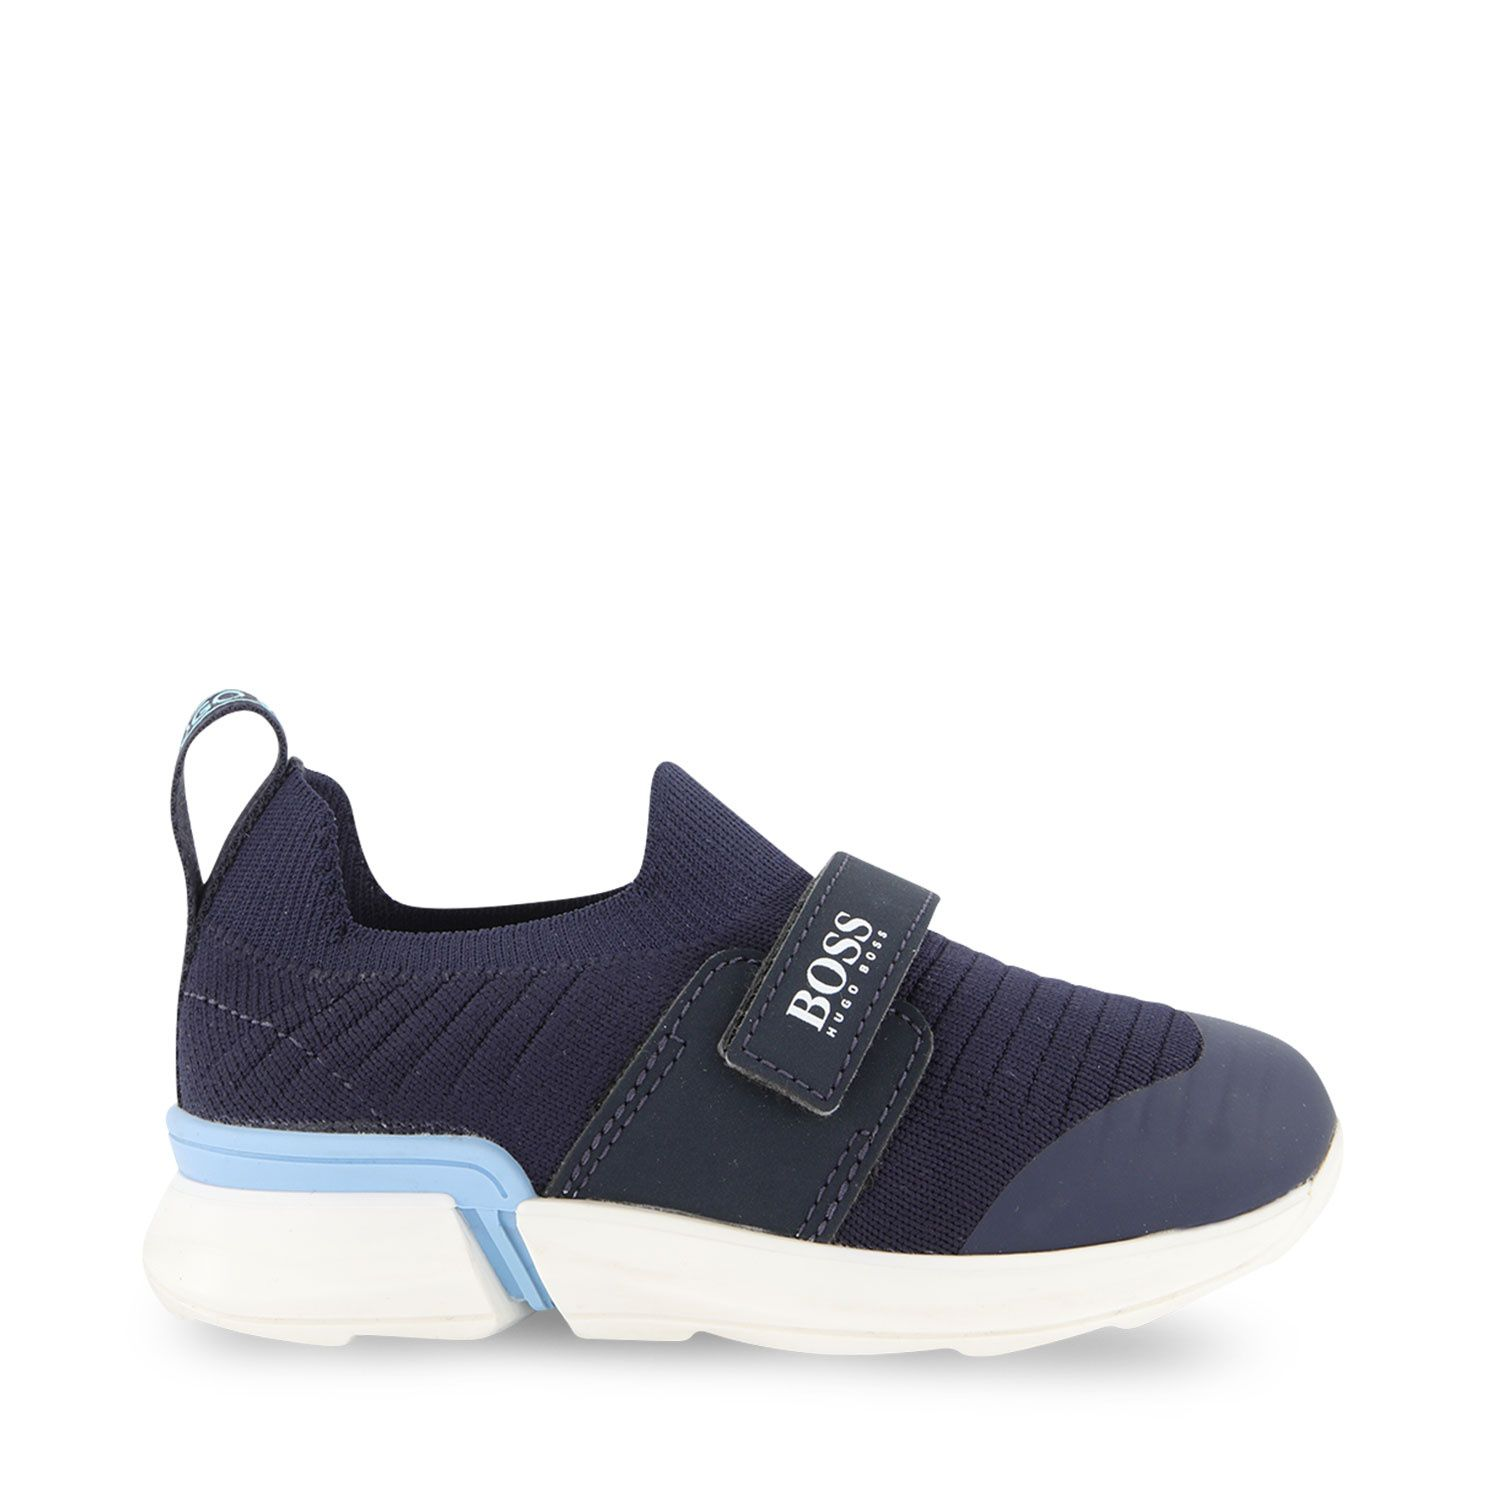 Picture of Boss J09151 kids sneakers navy